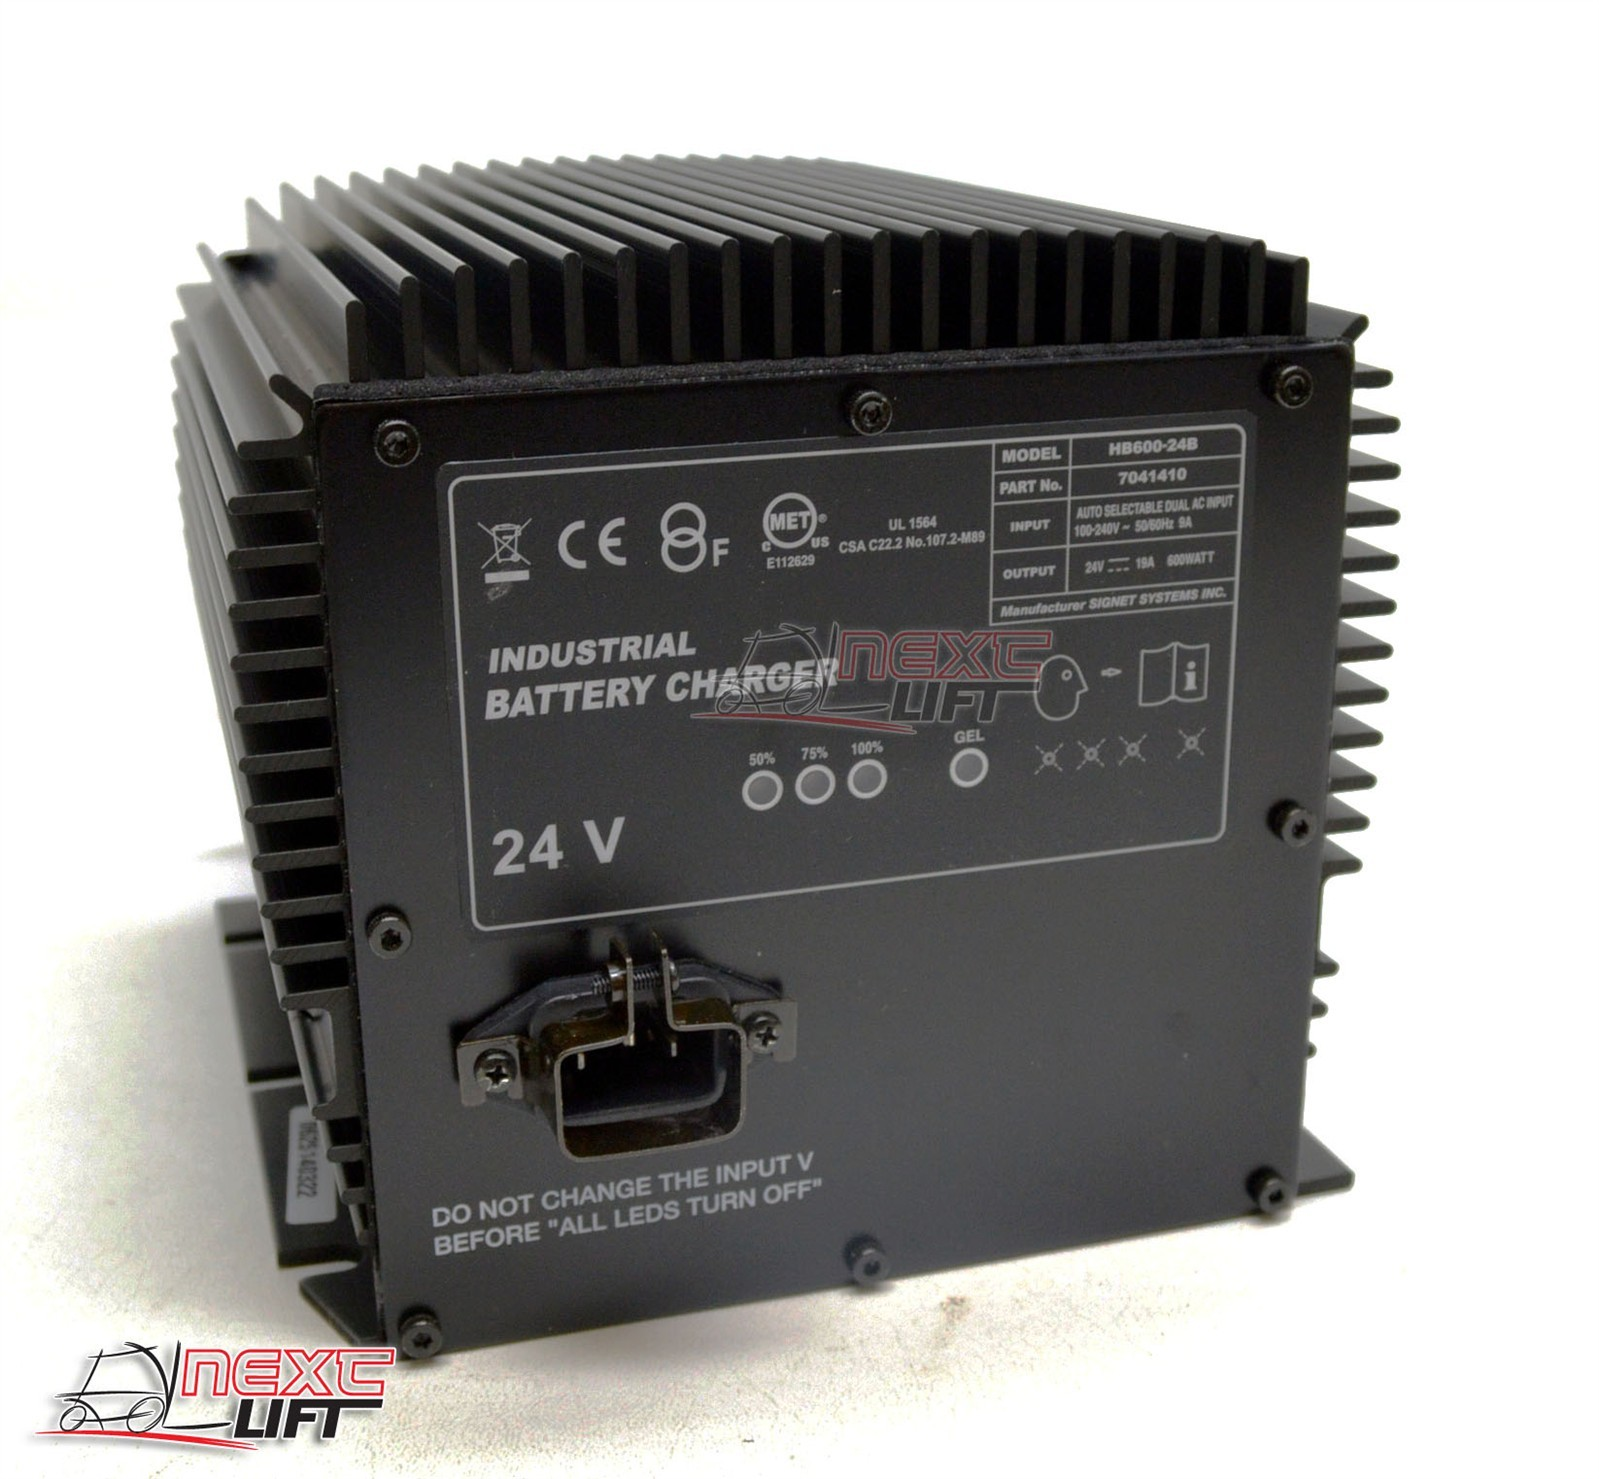 Details about NEW GENIE GS-2646 SCISSOR LIFT 24V BATTERY CHARGER AERIAL  BOOM GS2646